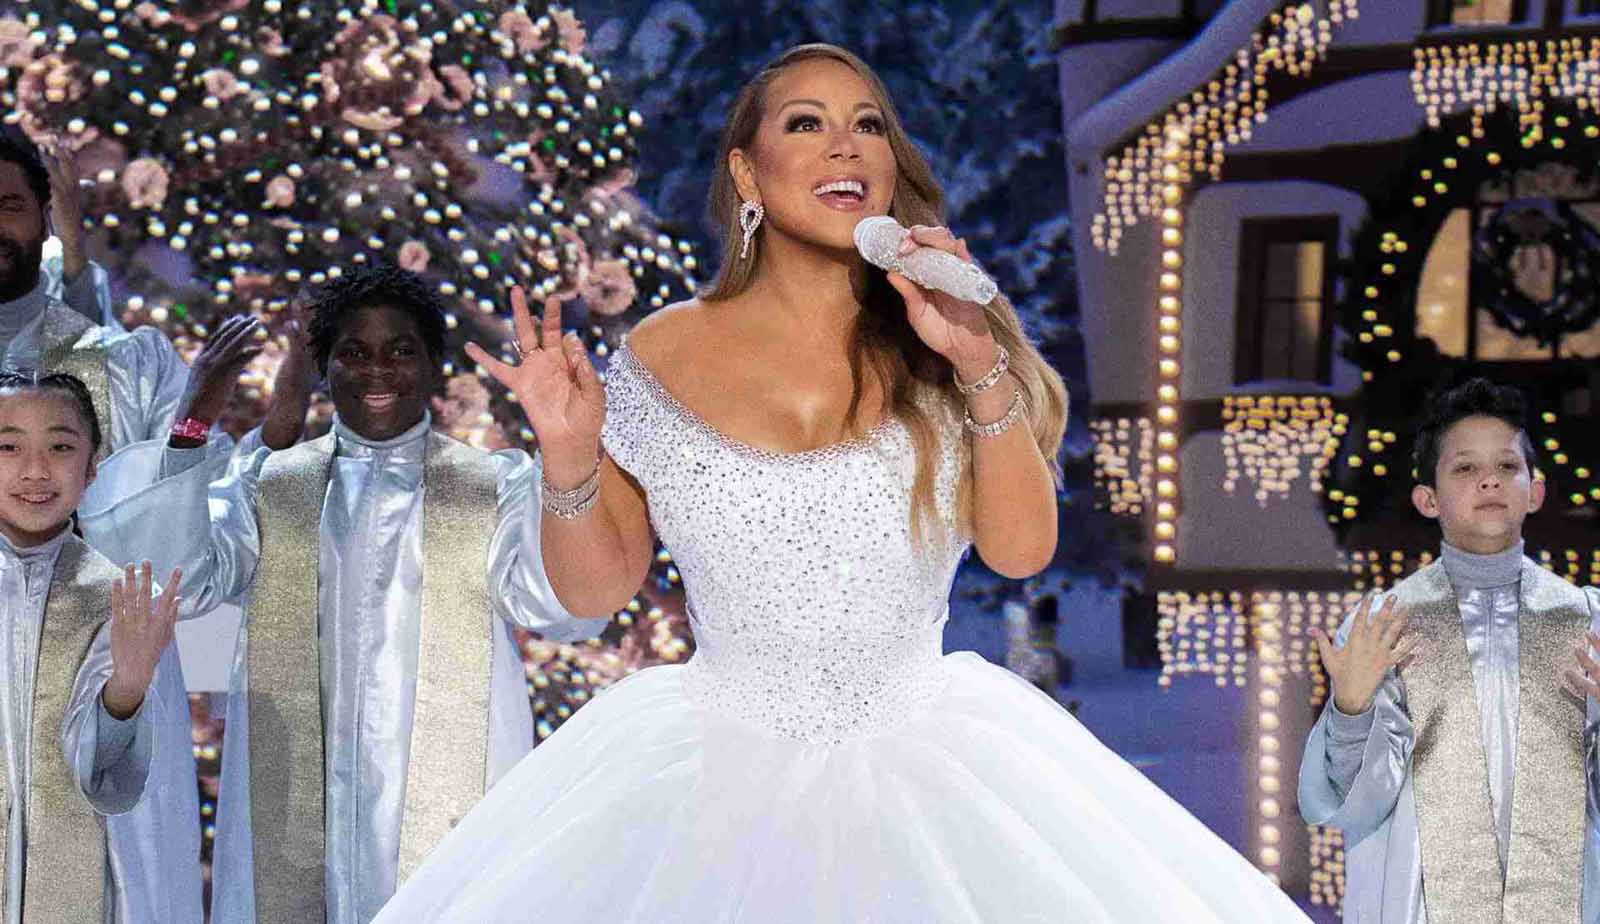 The unofficial Queen of Christmas finally has her own special. Check out everything you need to know about Mariah Carey's new Christmas special.